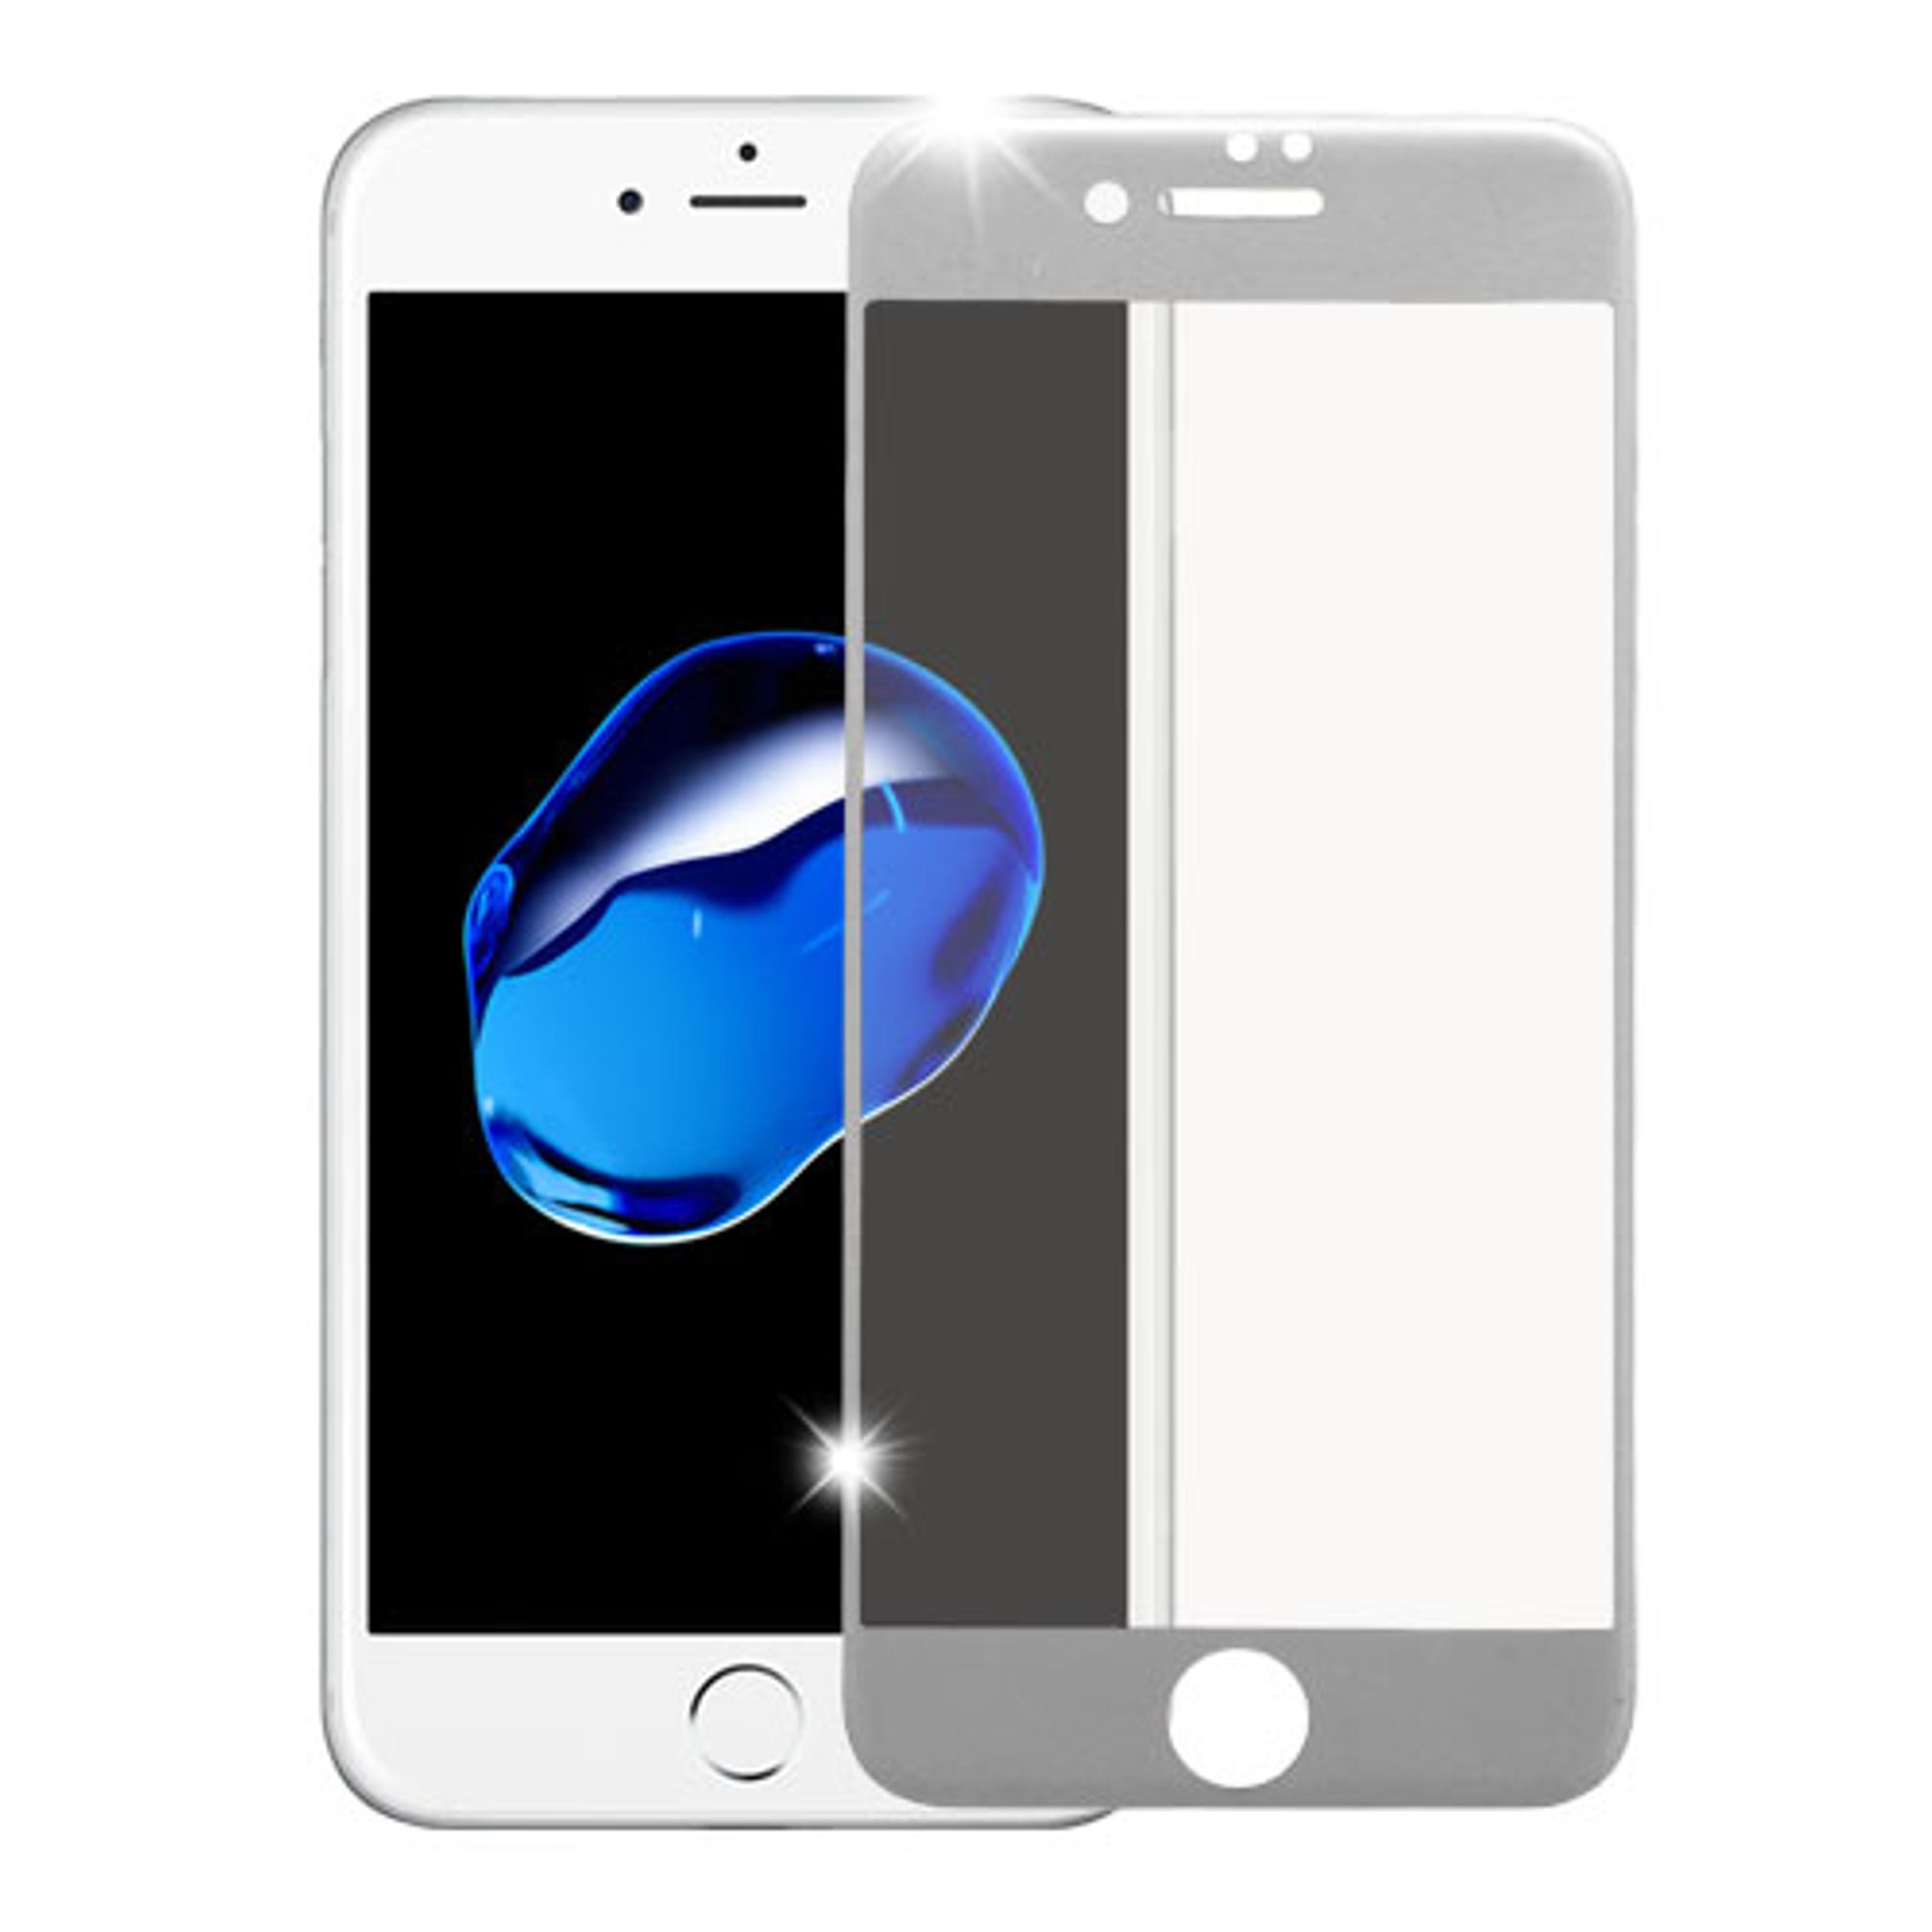 iPhone 8 glass protector, iPhone 7 glass protector, by Insten Clear Tempered Glass LCD Screen Protector Film (Full Coverage) For Apple iPhone 8 / iPhone 7 (4.7 inch) - Silver